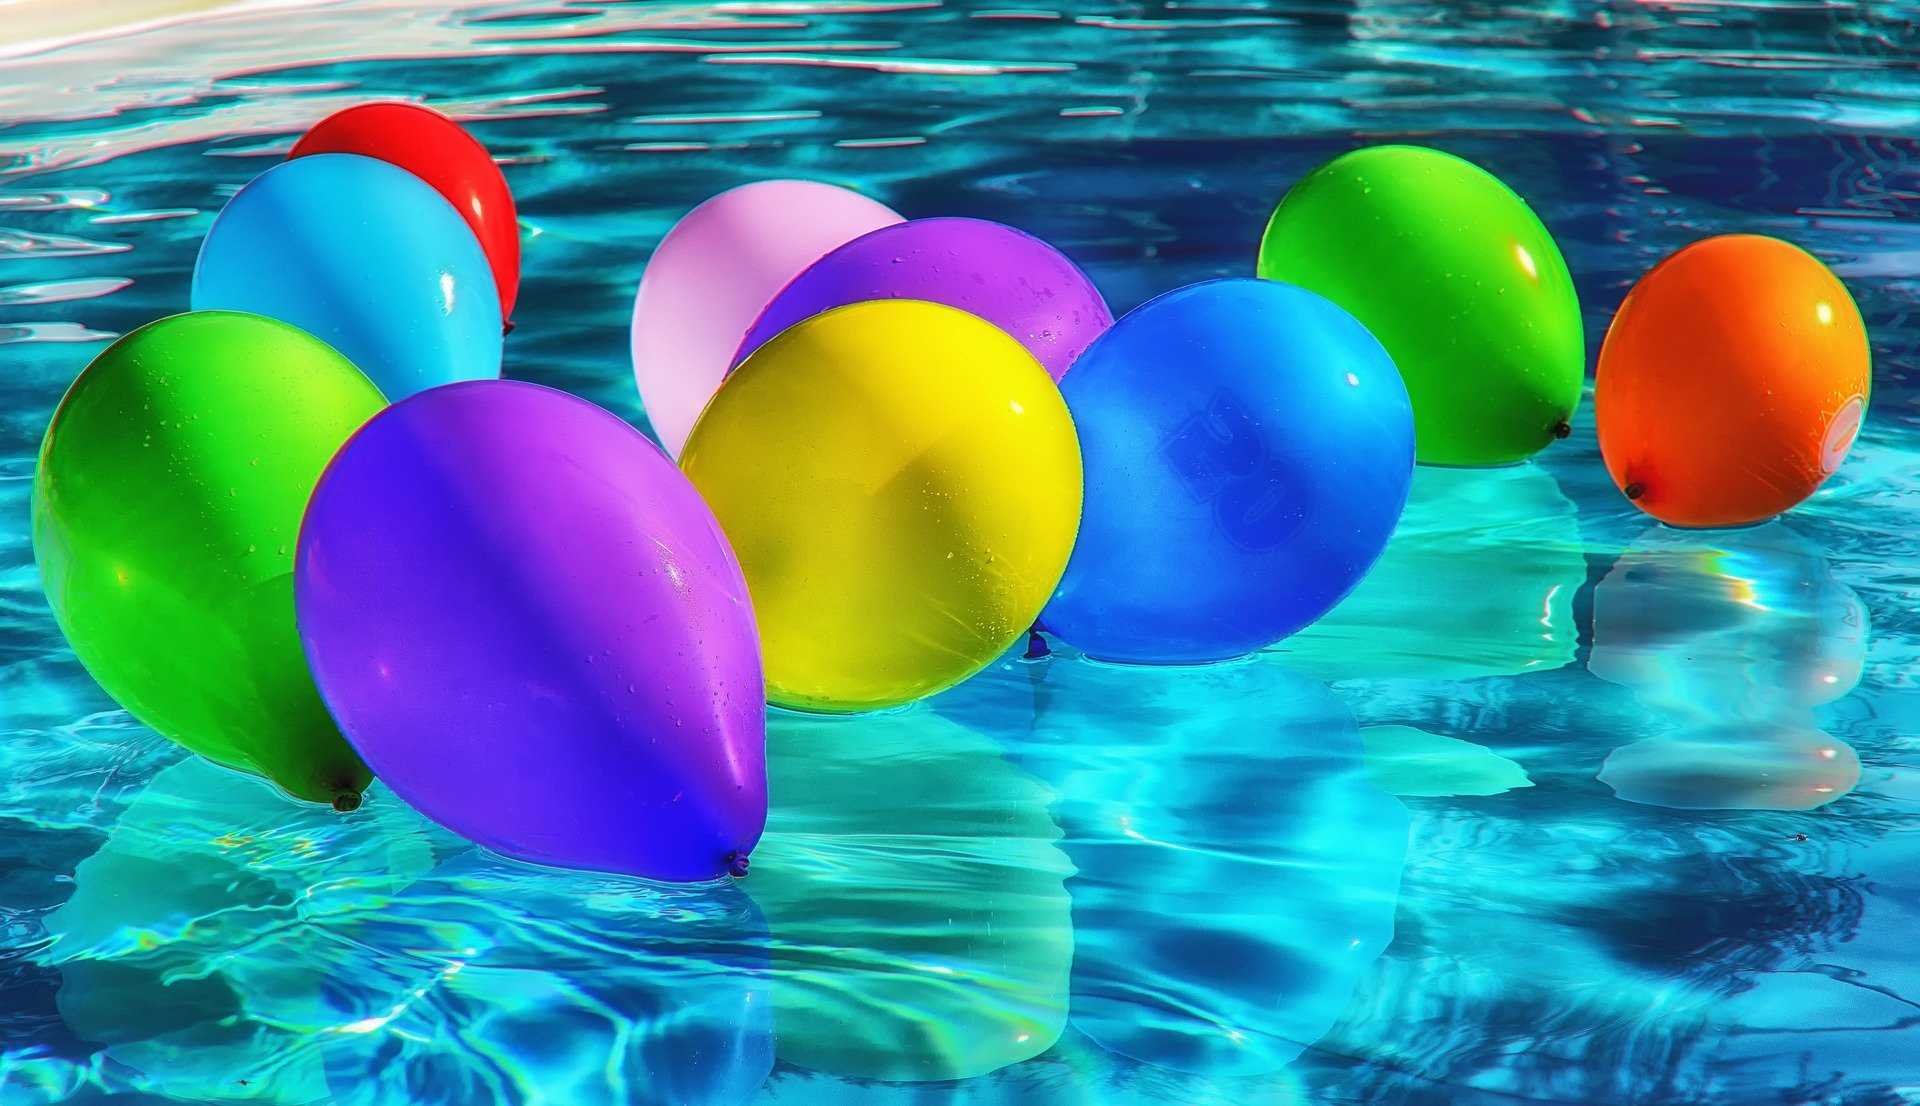 Balloons festively floating in a swimming pool. | Source: Pixabay.